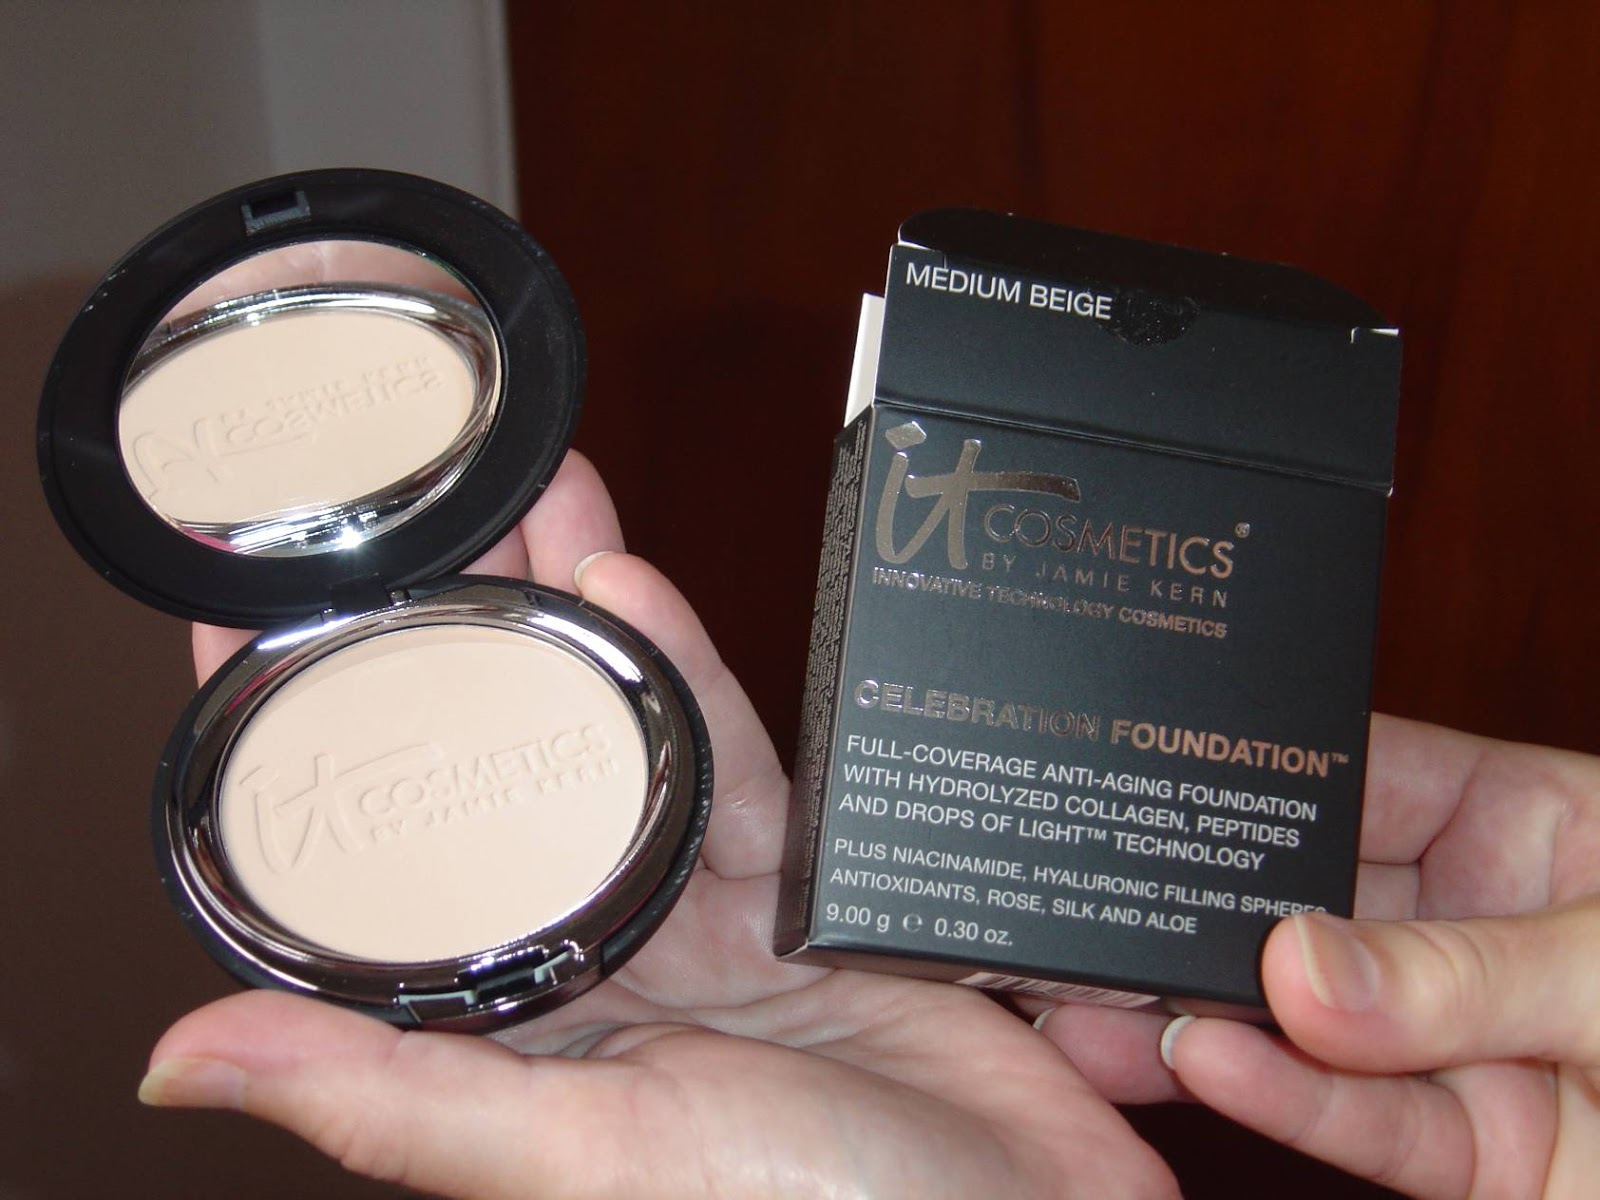 IT Cosmetics Celebration Foundation.jpeg